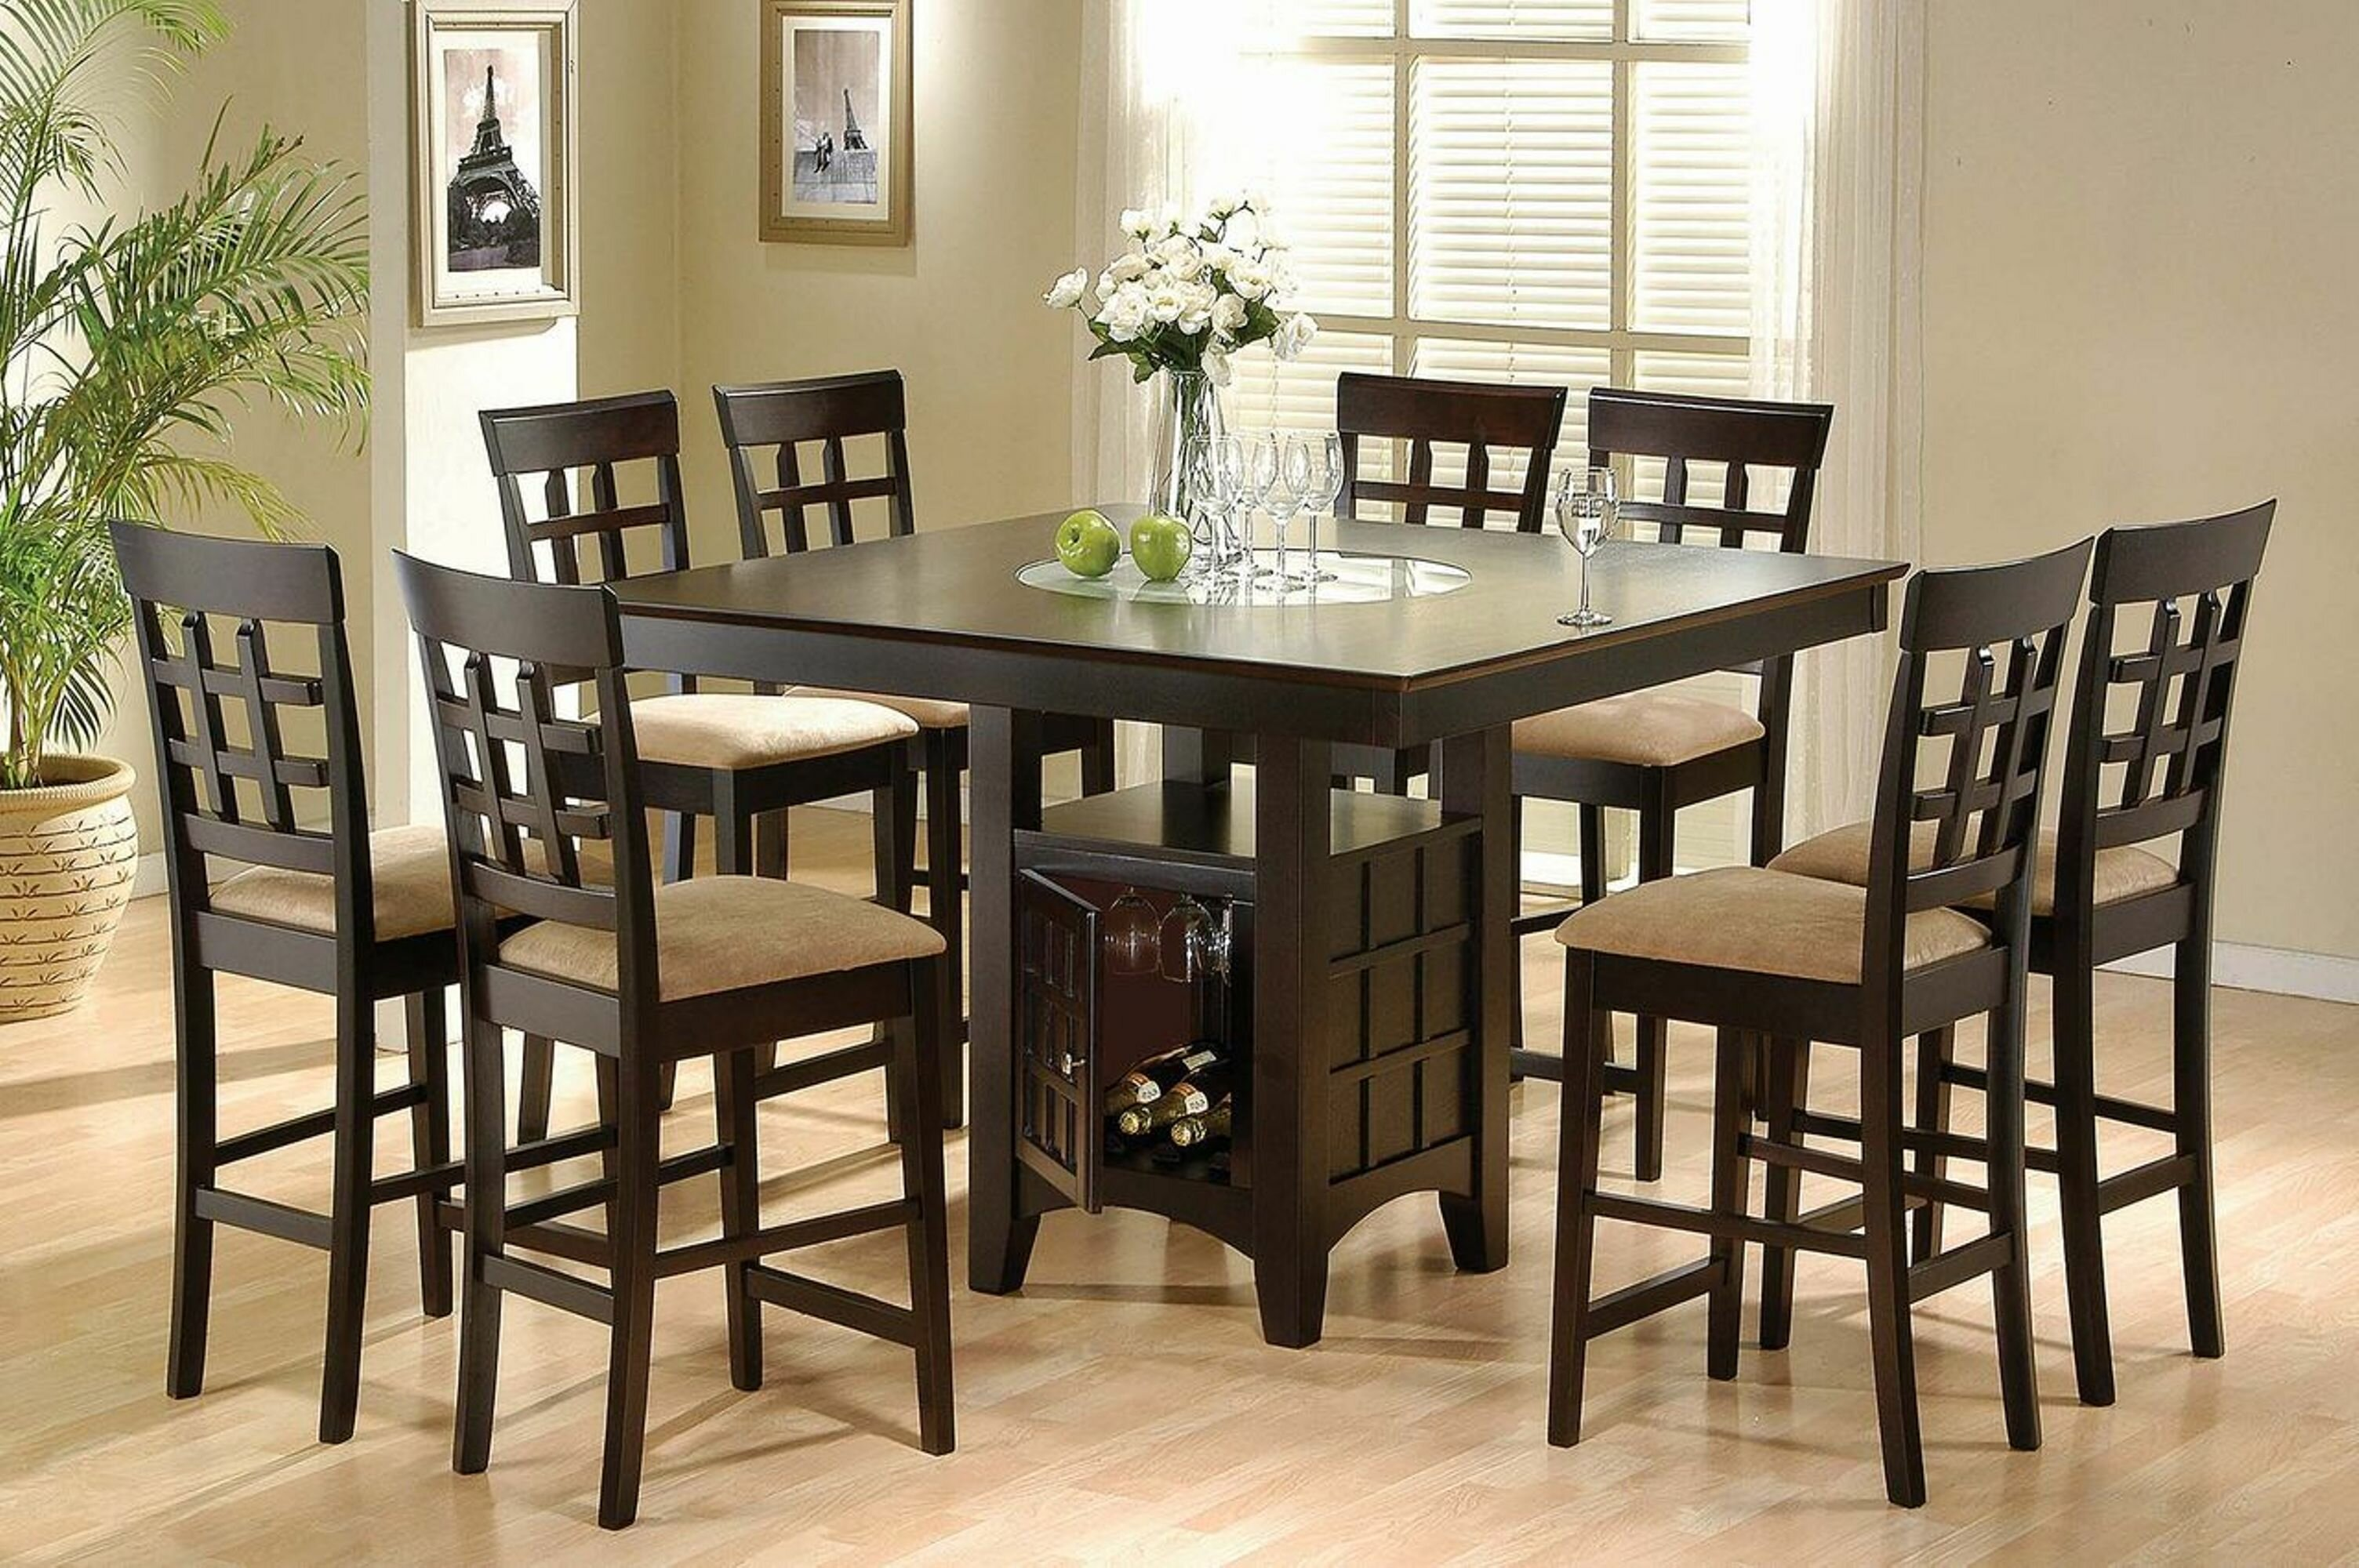 Alcott hill melvin counter height dining table reviews wayfair